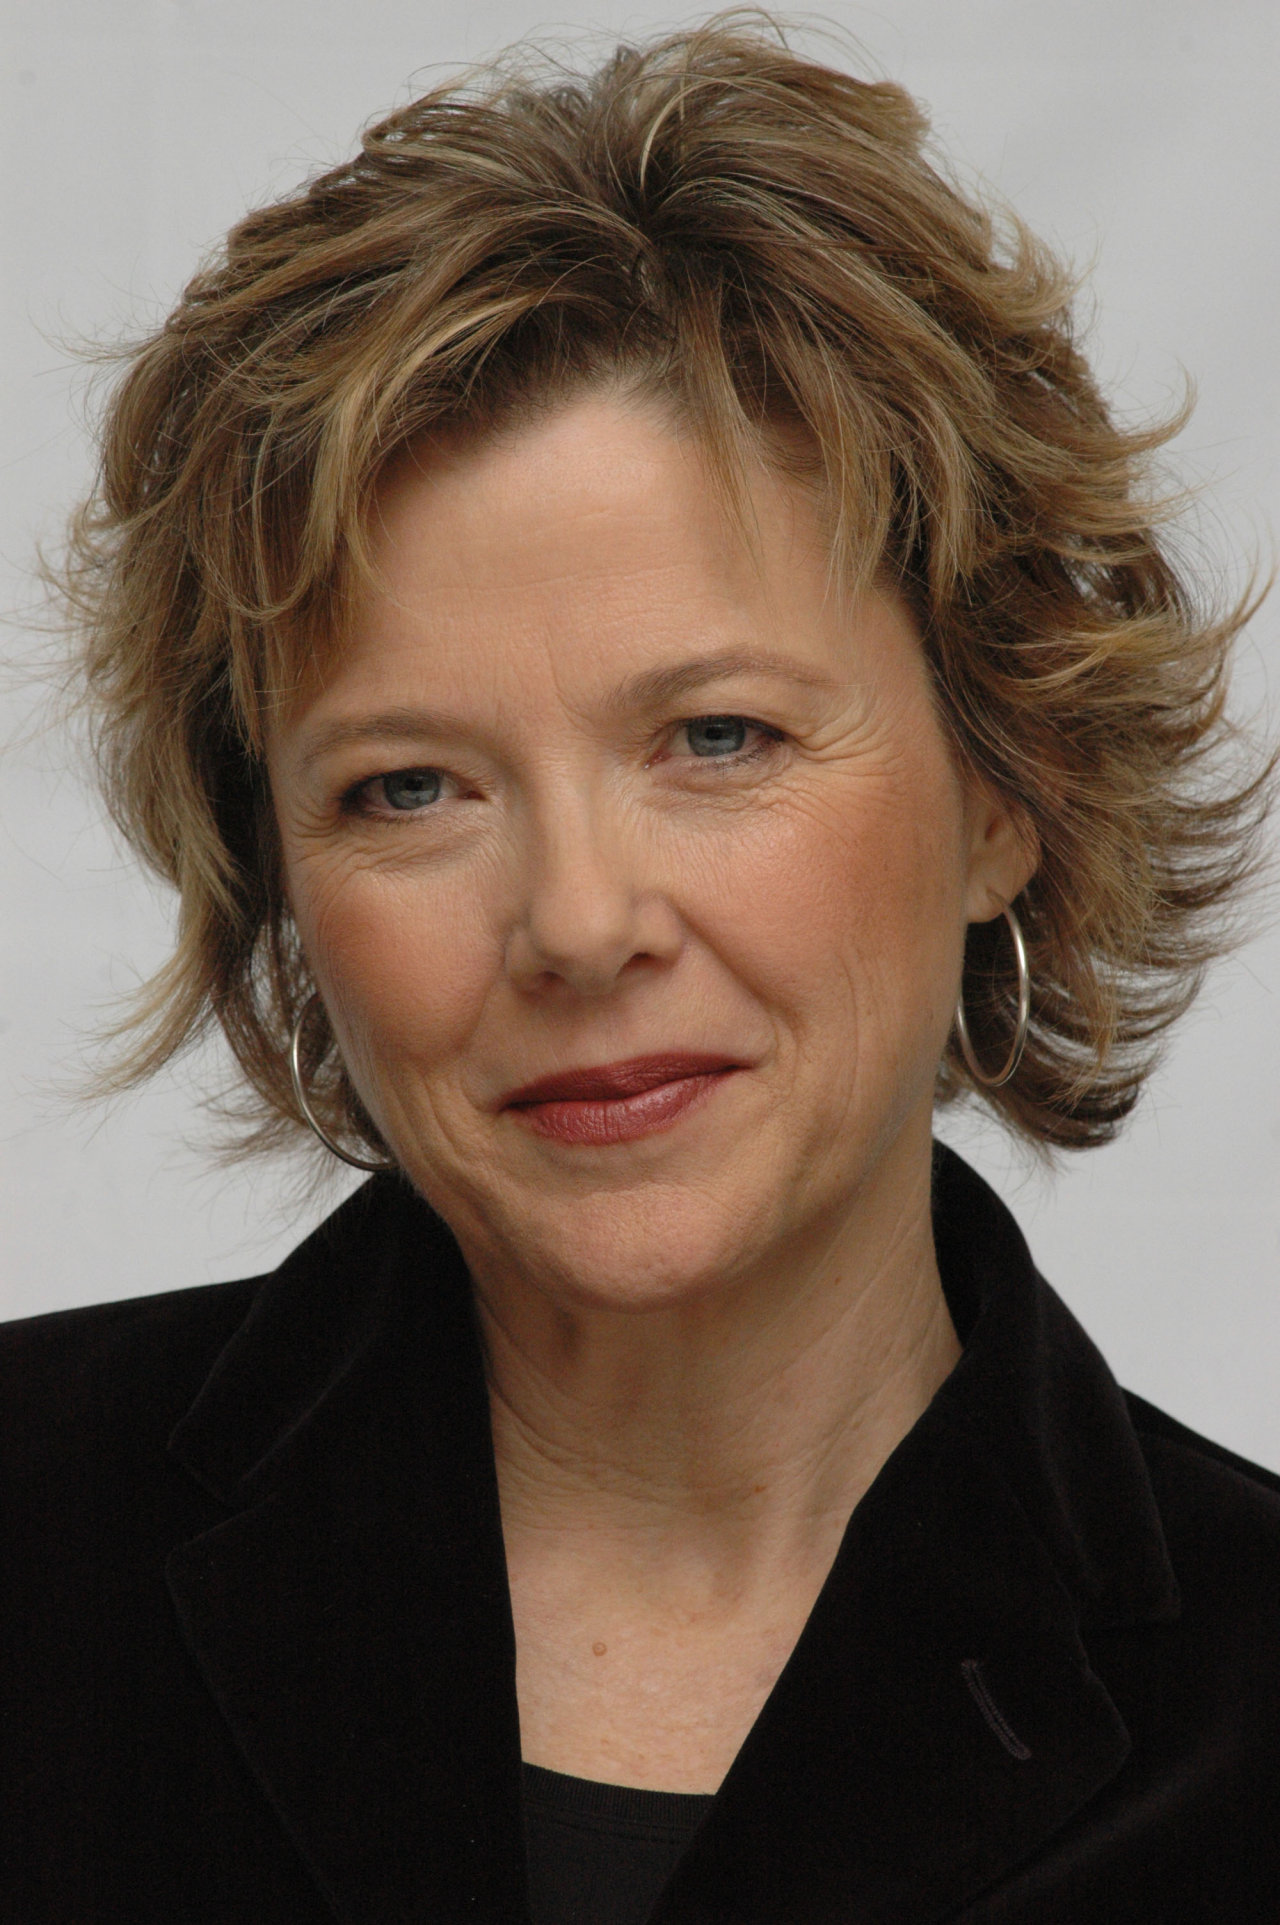 annette bening wallpaper - photo #2